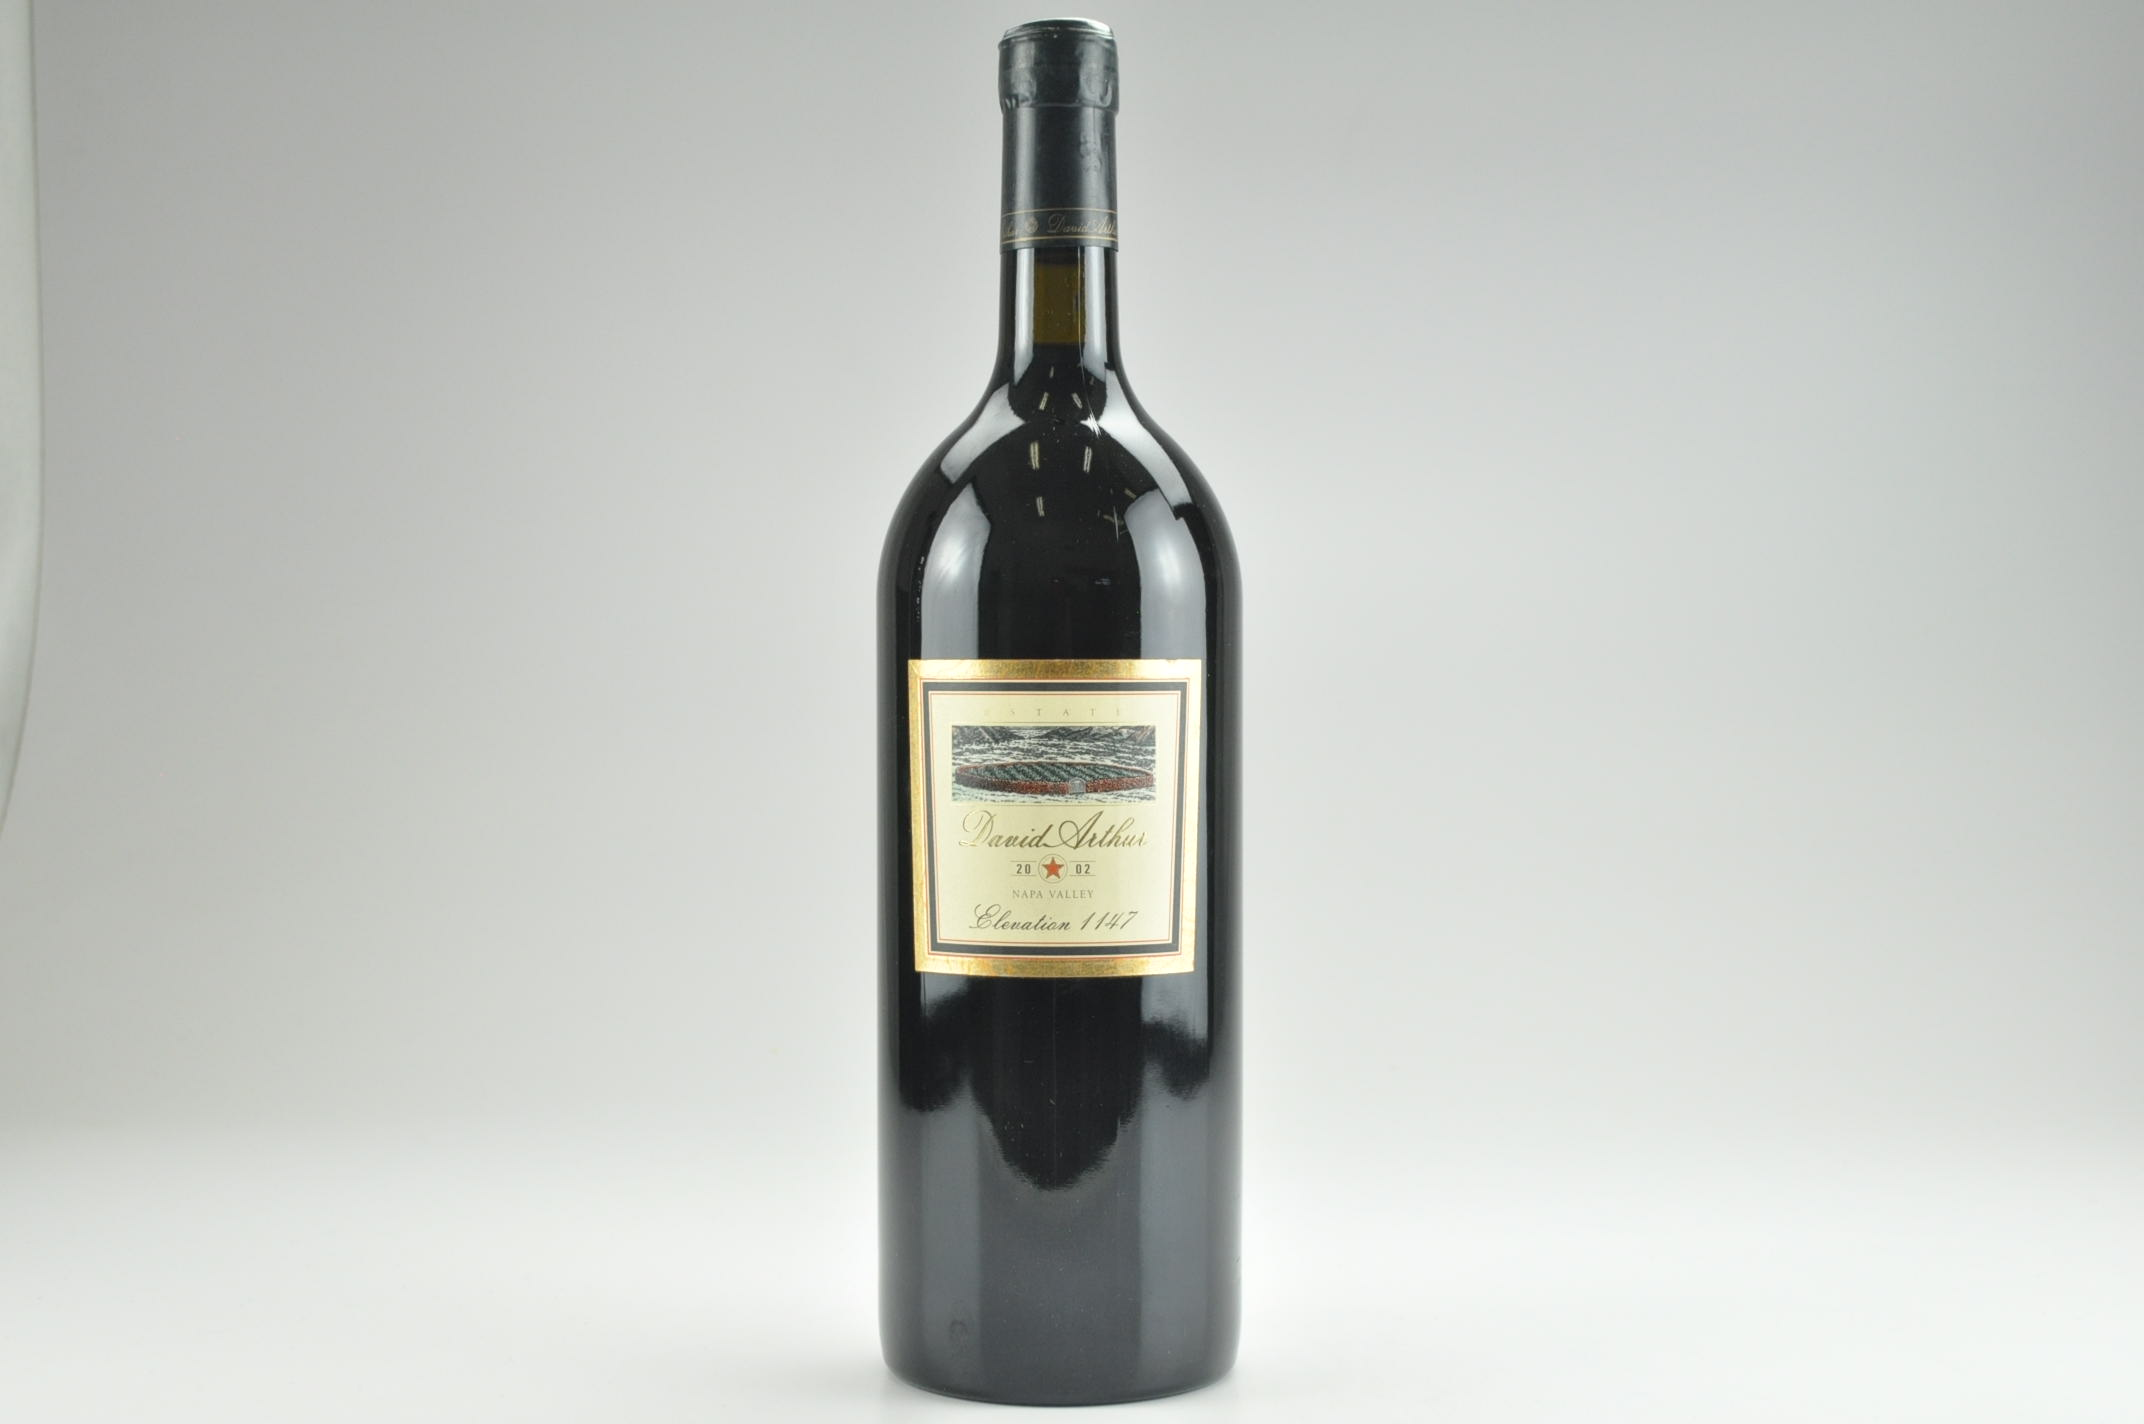 2002 David Arthur Cabernet Sauvignon Elevation 1147 1.5 L, Rutherford RP--95